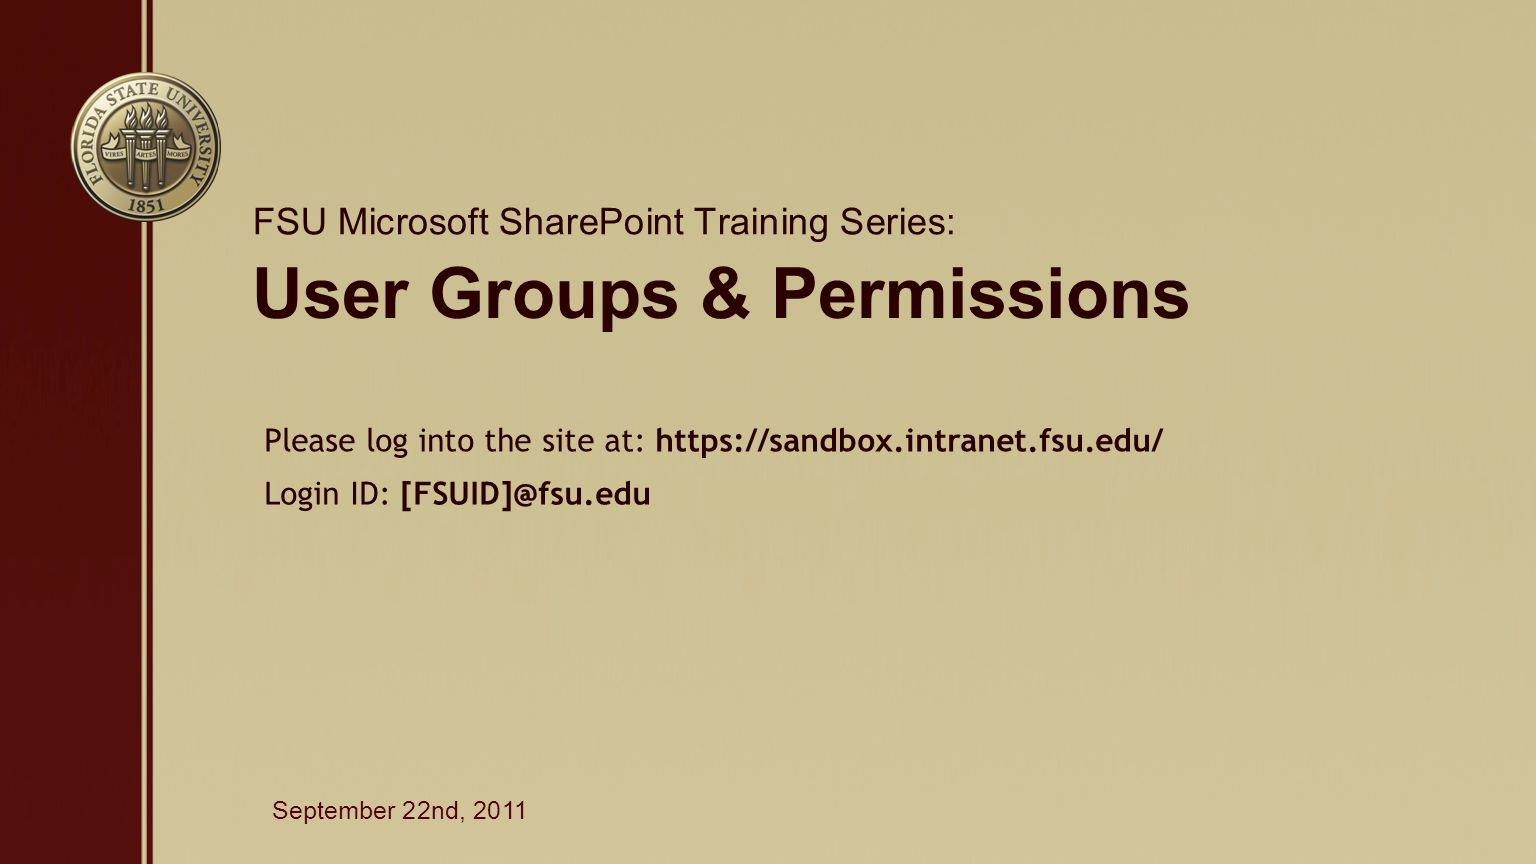 User Groups & Permissions FSU Microsoft SharePoint Training Series: September 22nd, 2011 Please log into the site at: https://sandbox.intranet.fsu.edu/ Login ID: [FSUID]@fsu.edu